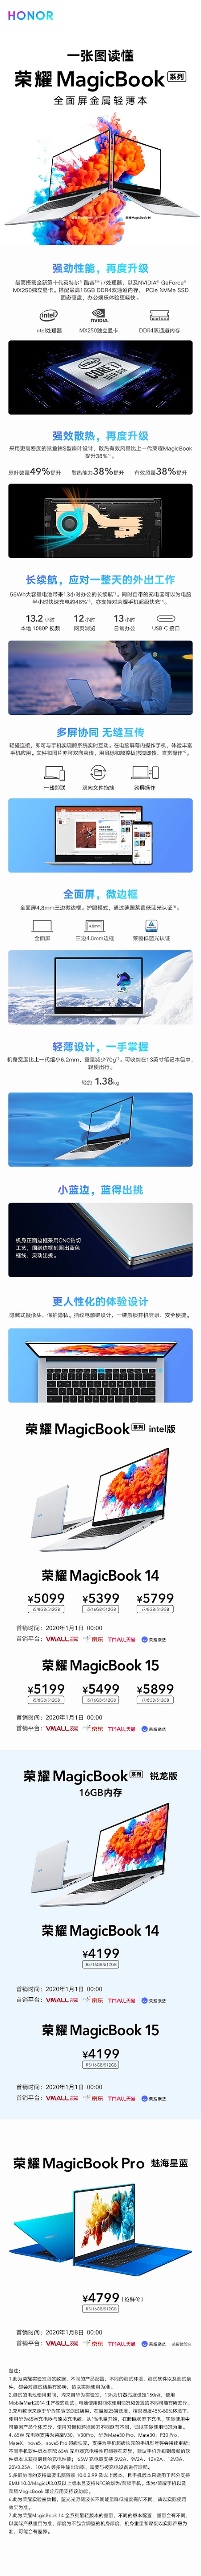 荣耀MagicBook 14&15 Intel版售5099元起:采用英特尔第十代处理器